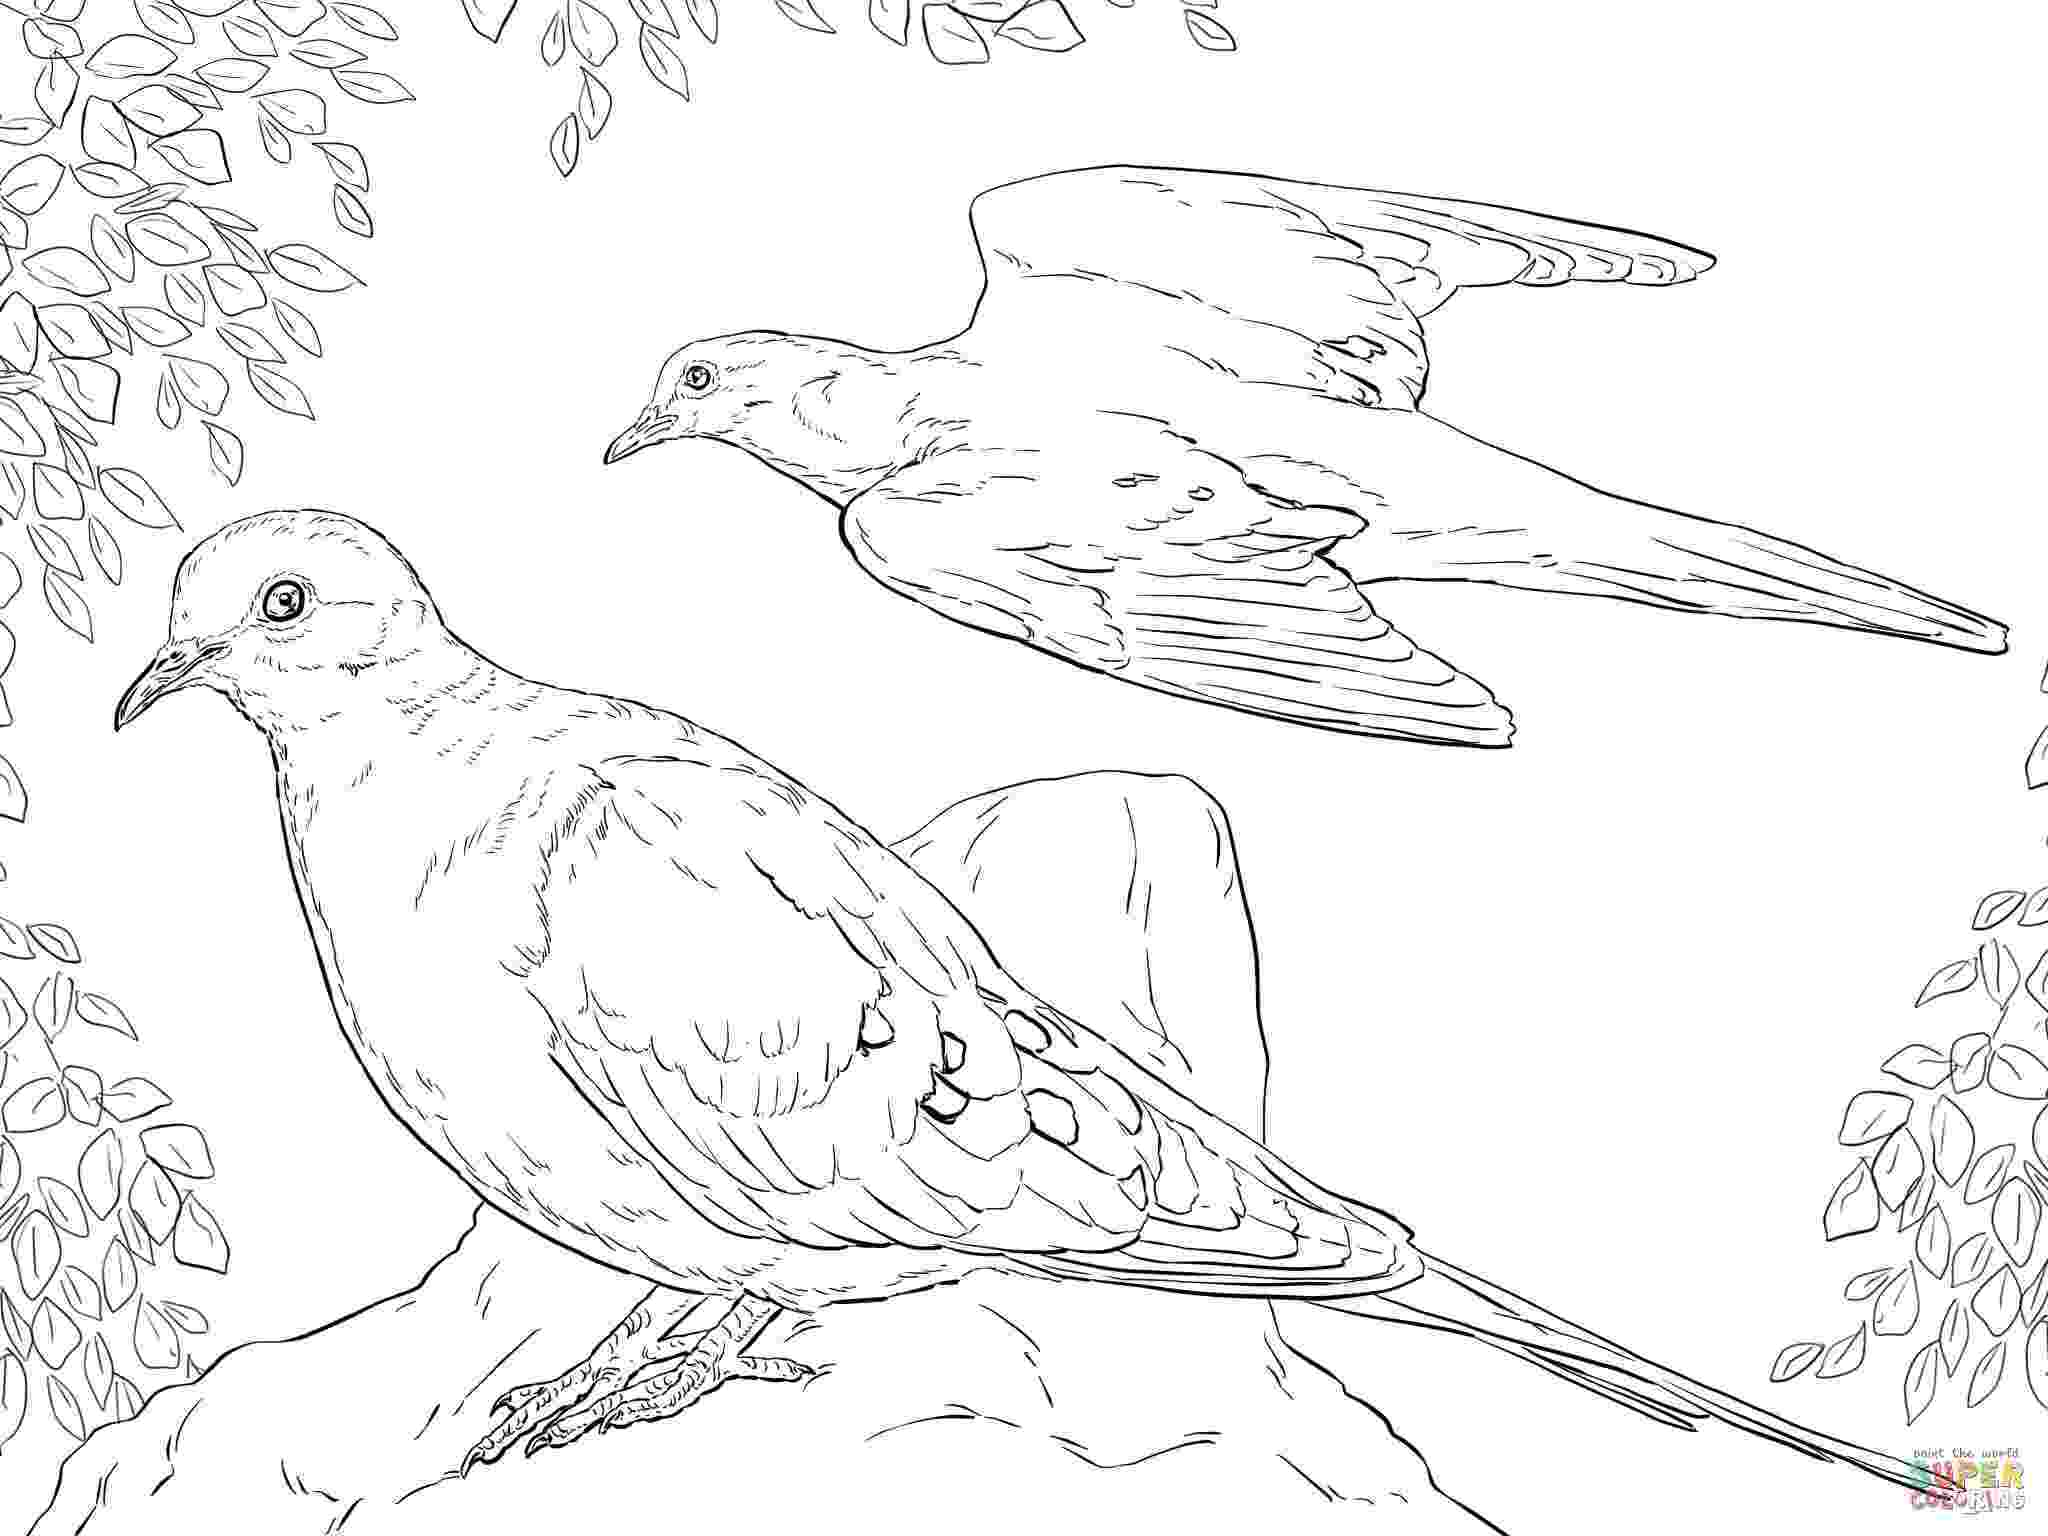 doves coloring pages peace dove coloring page at getcoloringscom free coloring pages doves